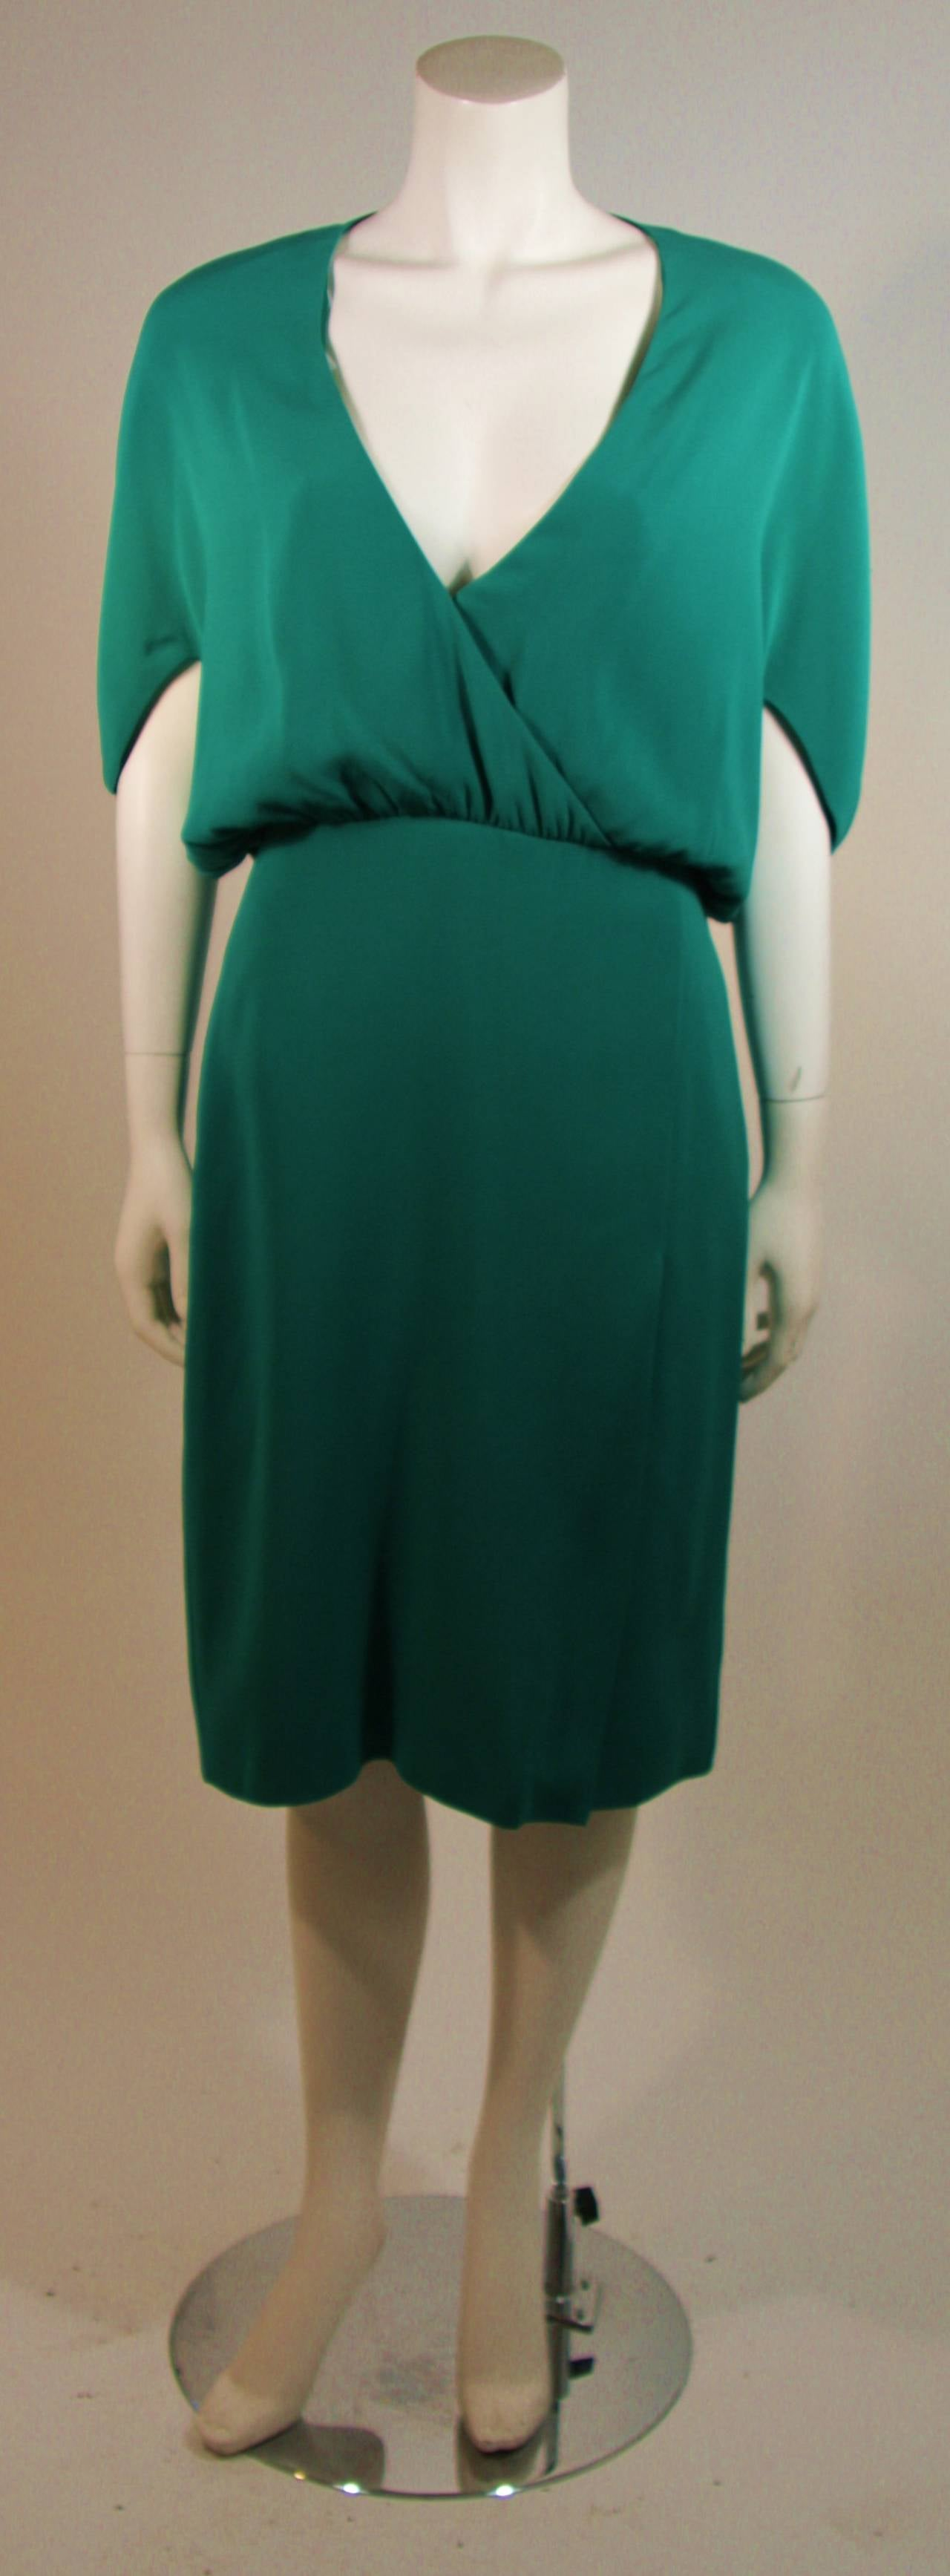 Valentino Green Silk Cocktail Dress with Plunge Neckline Size 8 In Excellent Condition For Sale In Los Angeles, CA